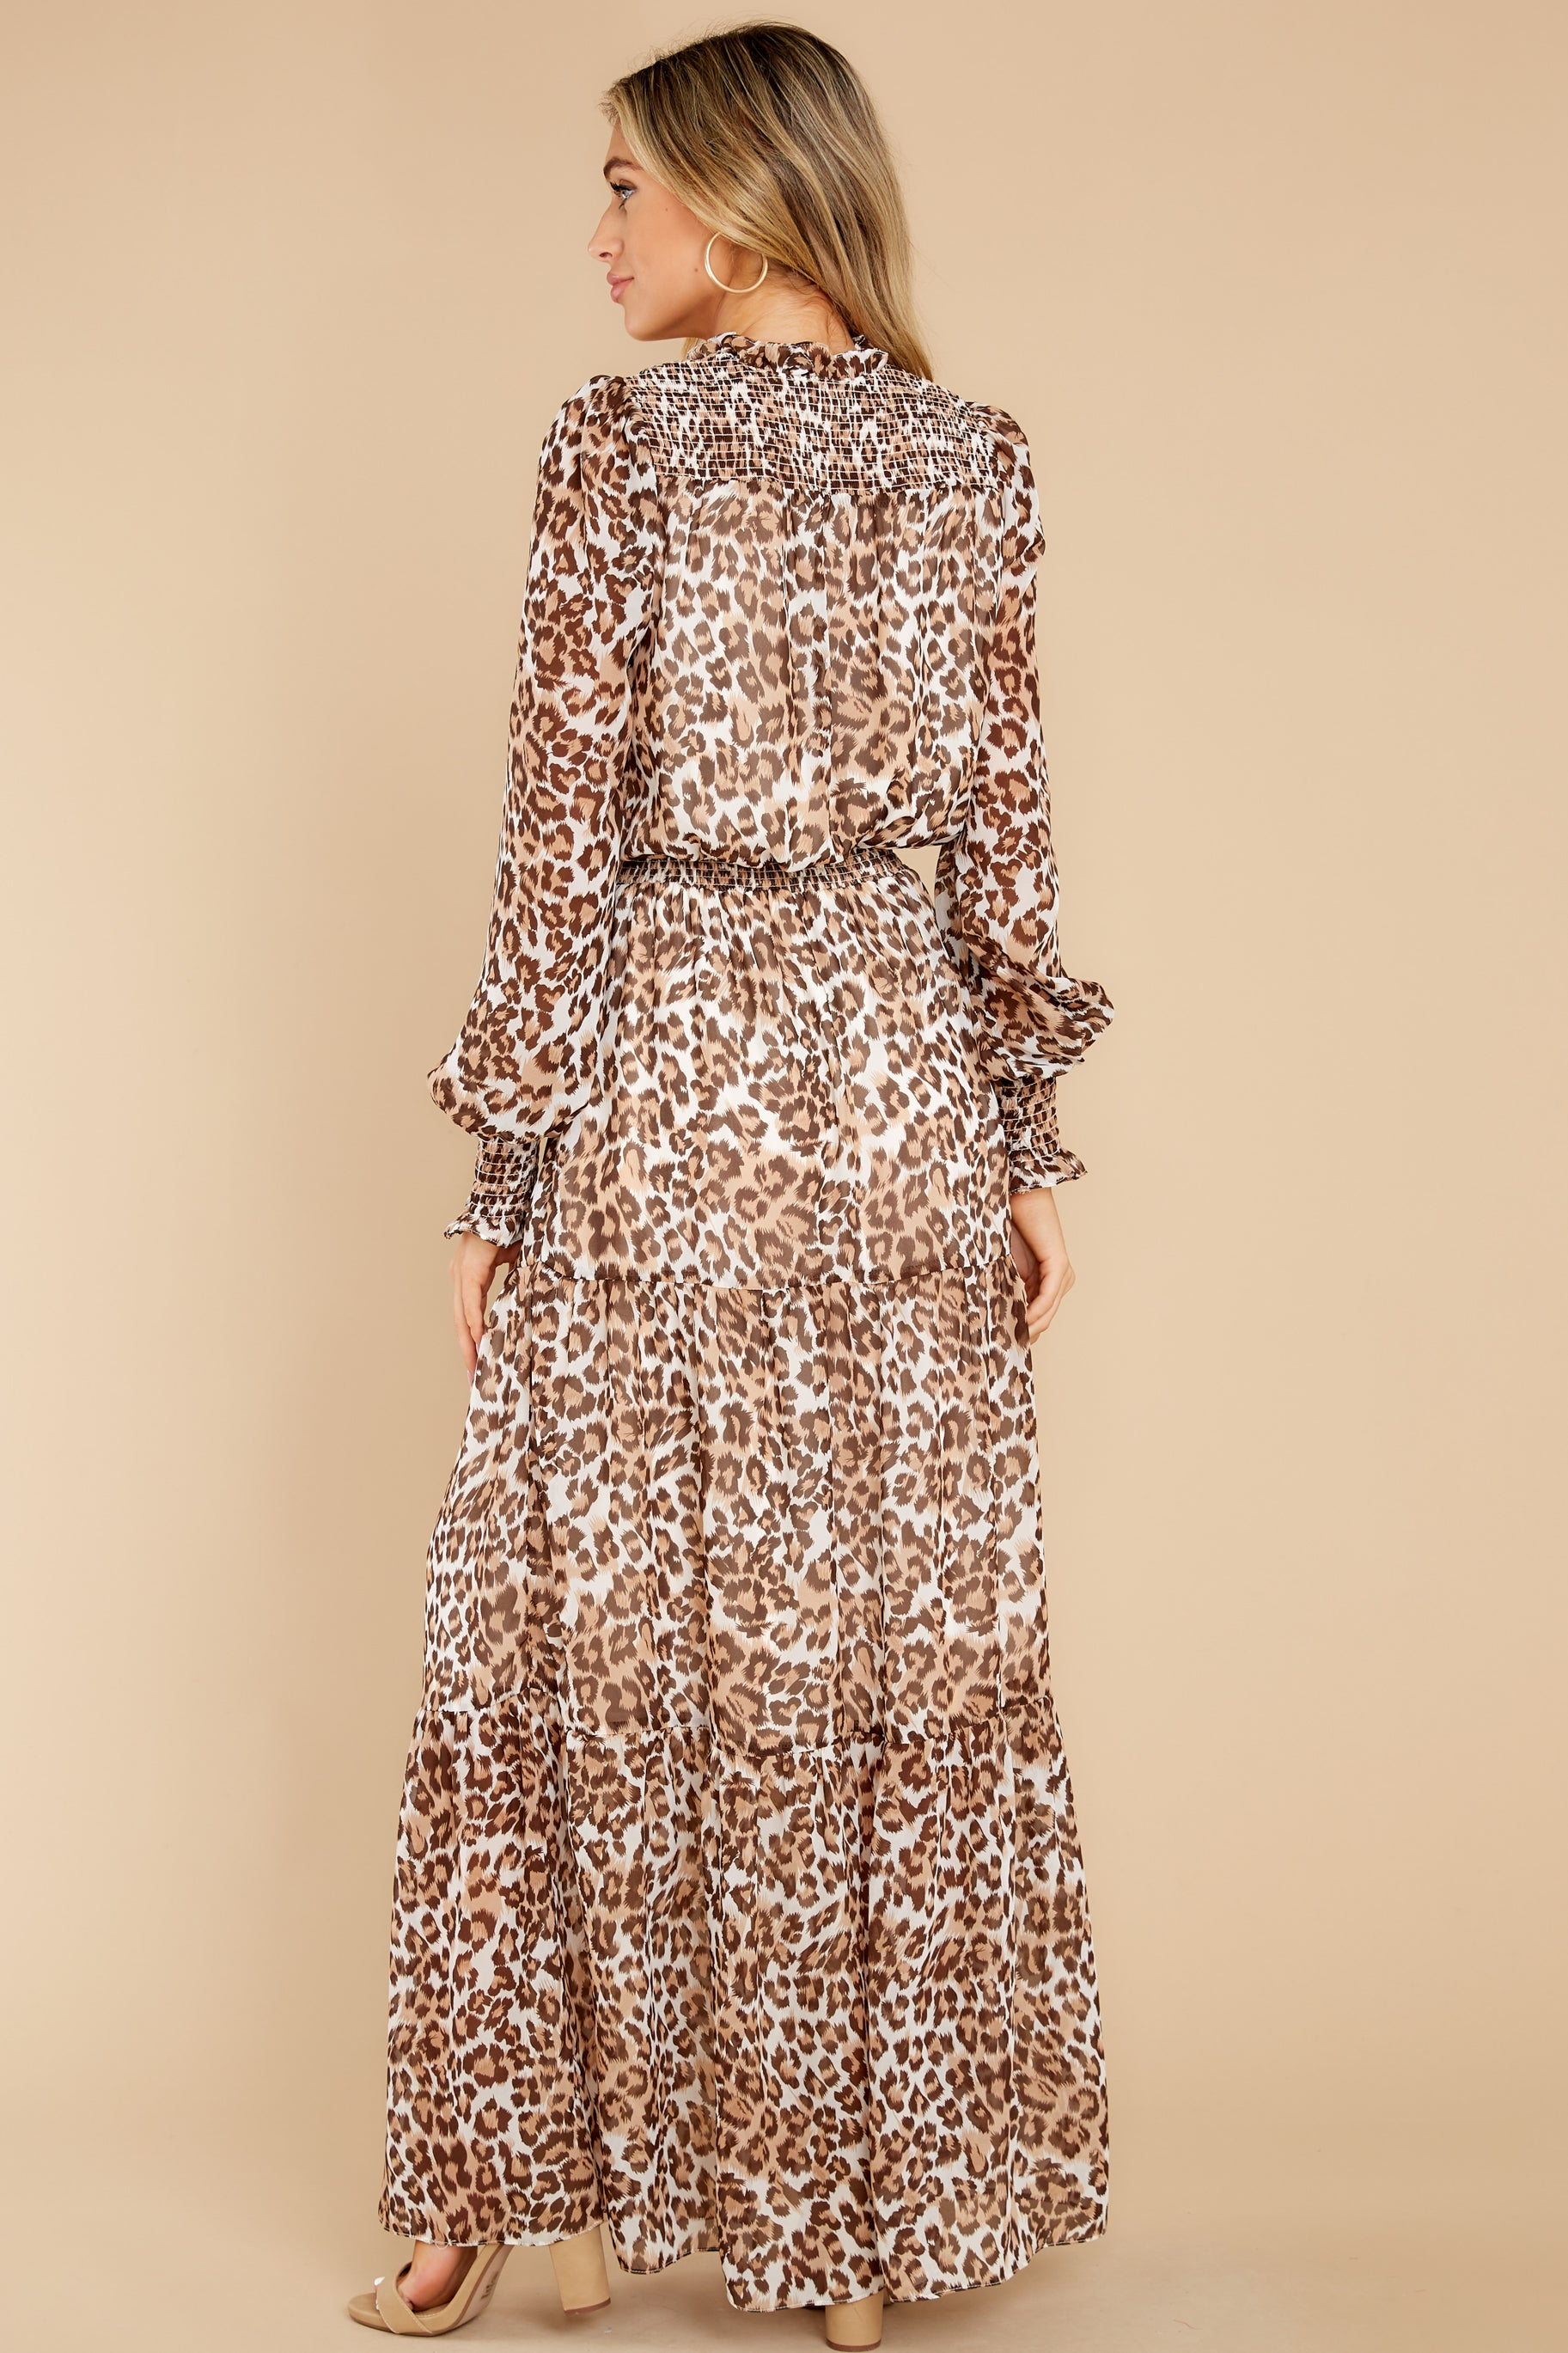 7 Steady As She Goes Leopard Print Maxi Dress at reddress.com